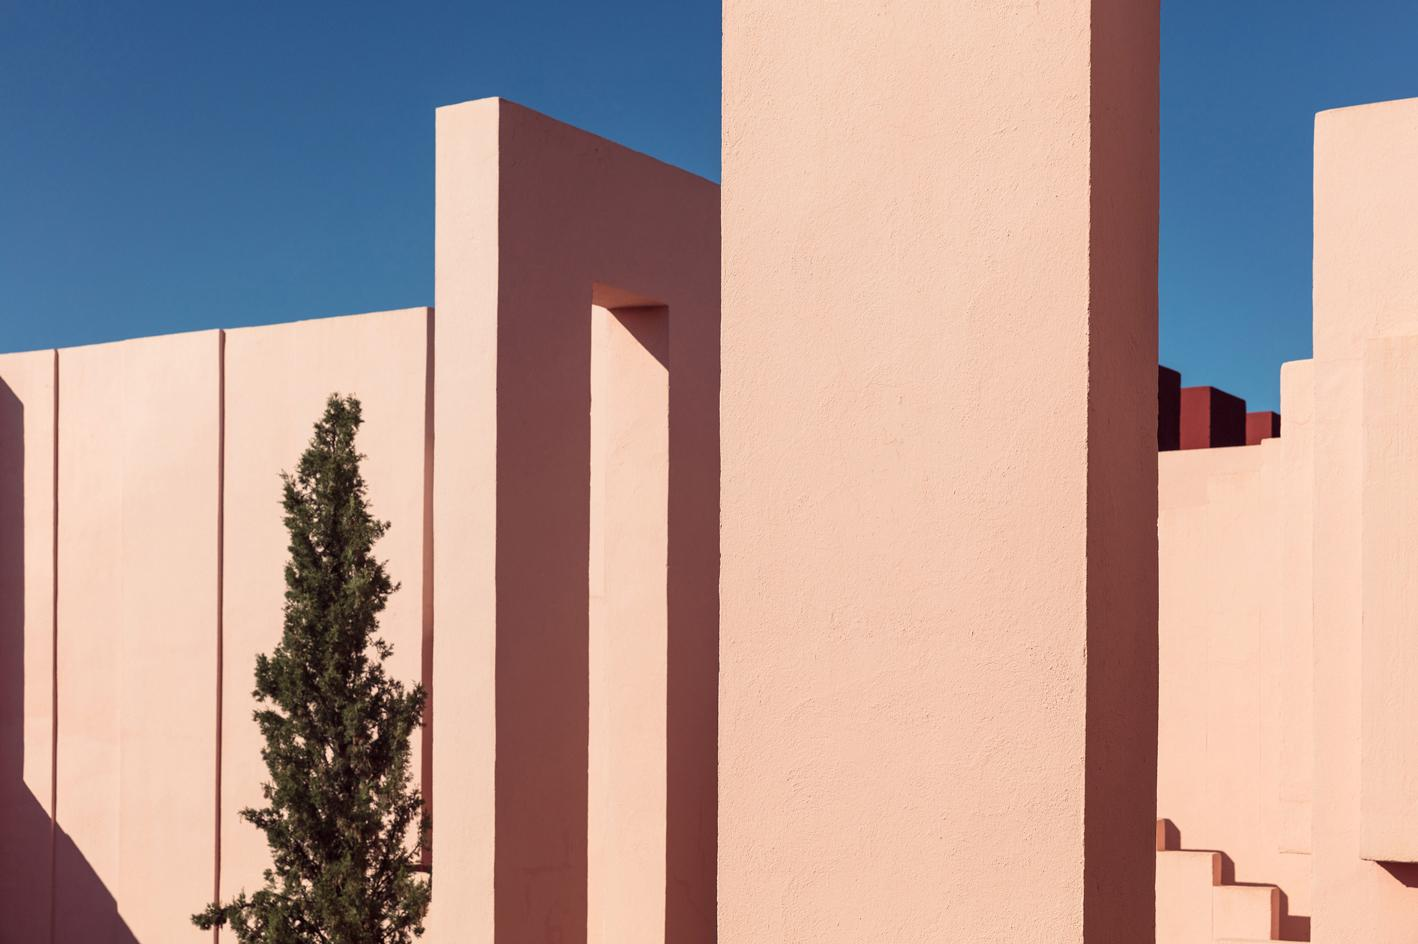 Sebastian Weiss' photo series on Ricardo Bofill's 'La Muralla Roja' in Calp, Spain